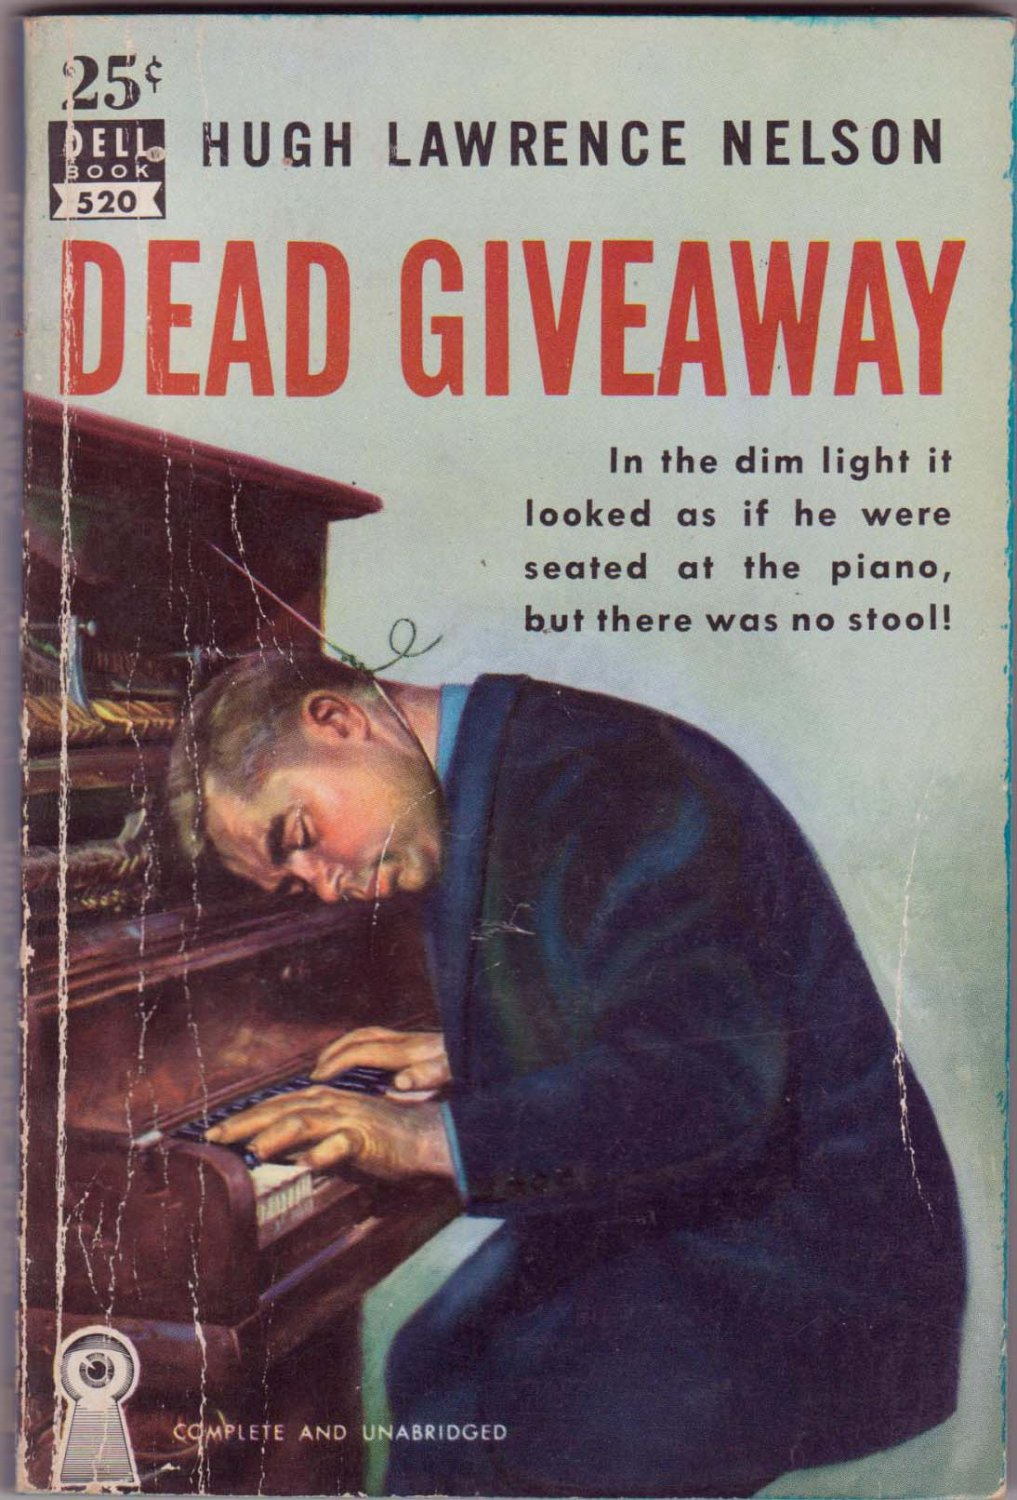 Dead Giveaway, H.L. Nelson, Vintage Paperback Book, Dell Mapback #520, Mystery